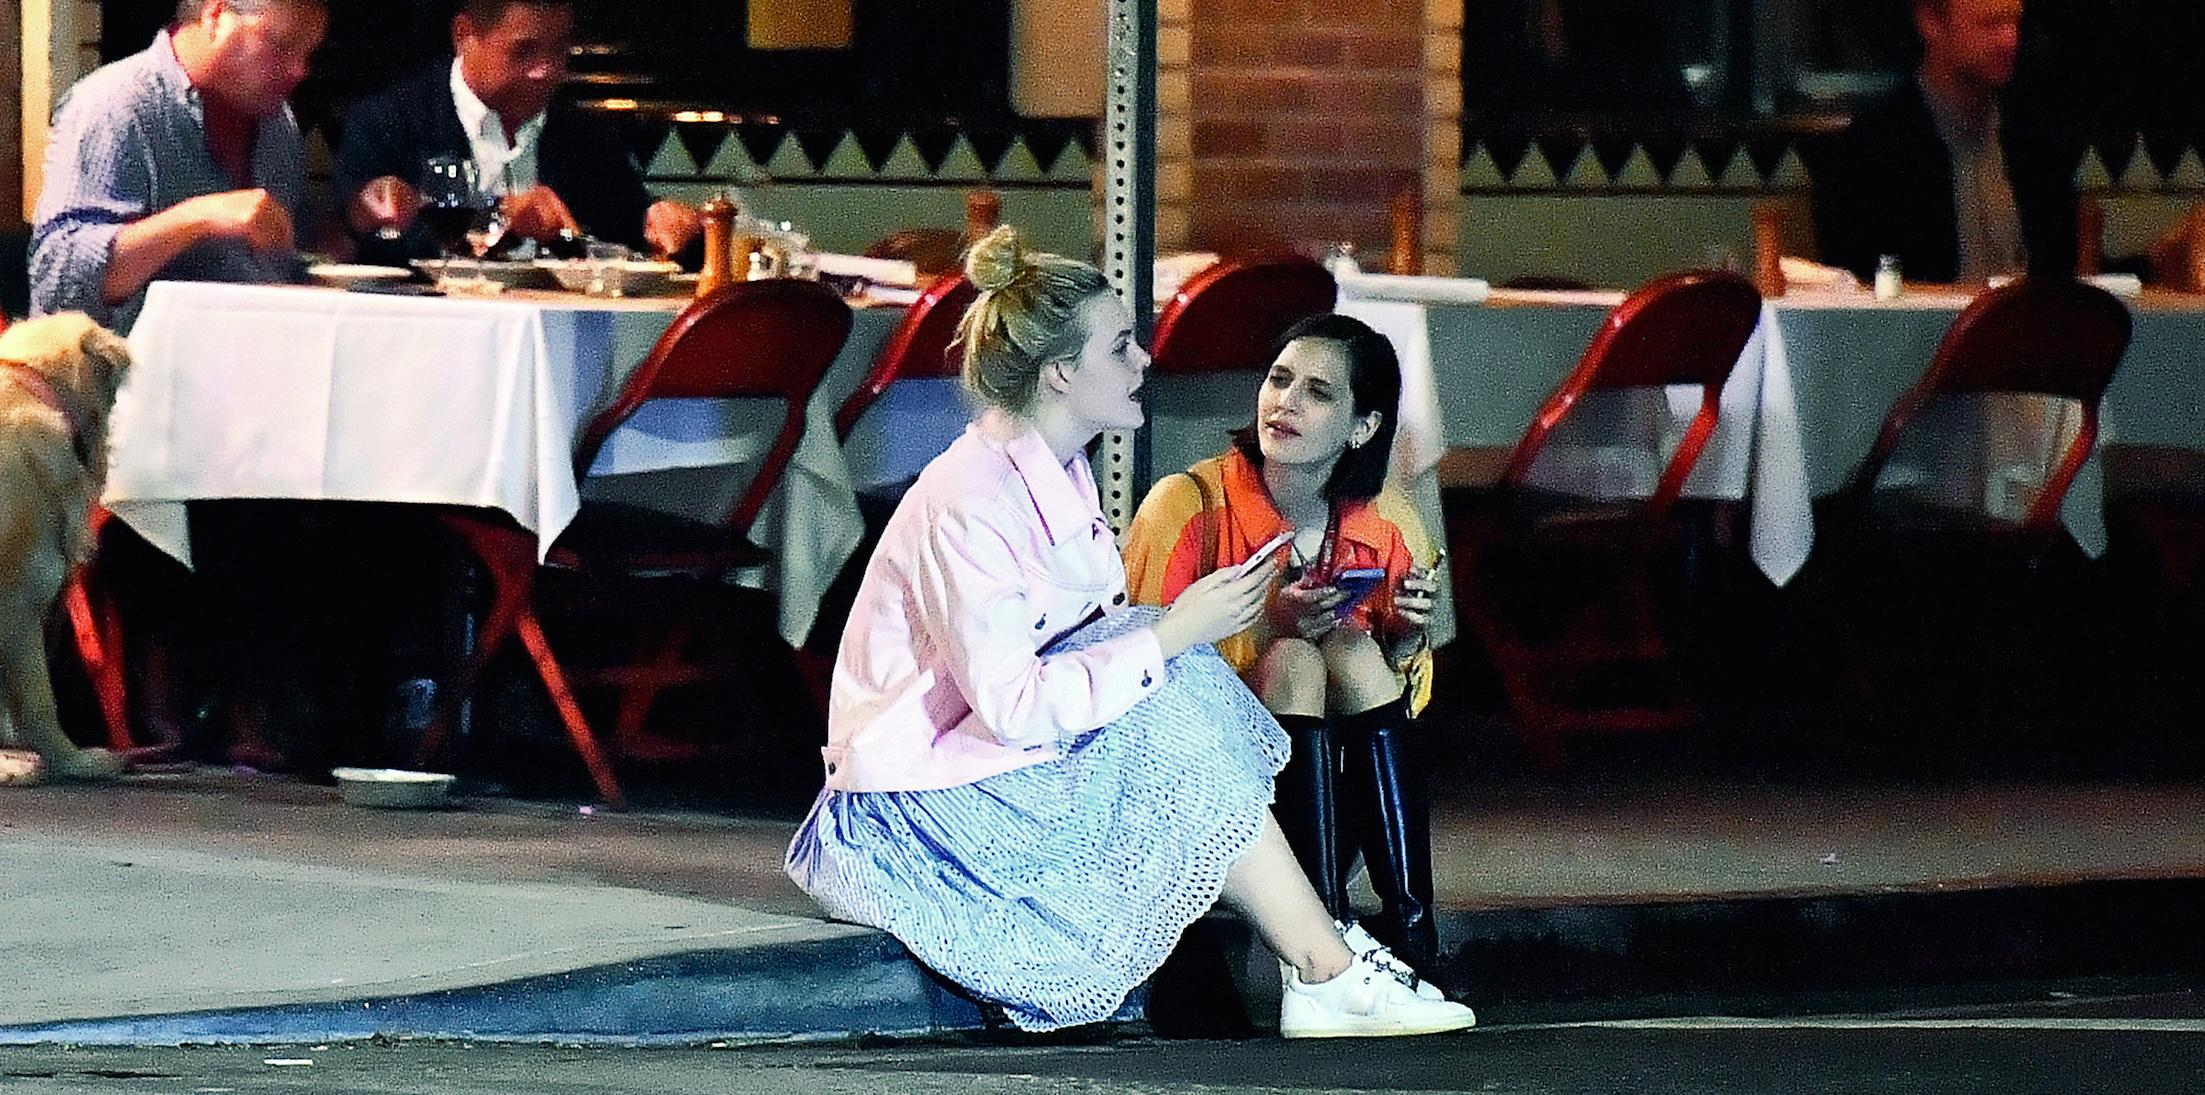 EXCLUSIVE: Elle Fanning sits on a curb and chats with a friend after dinner at Little Dom's in Los Feliz, CA.